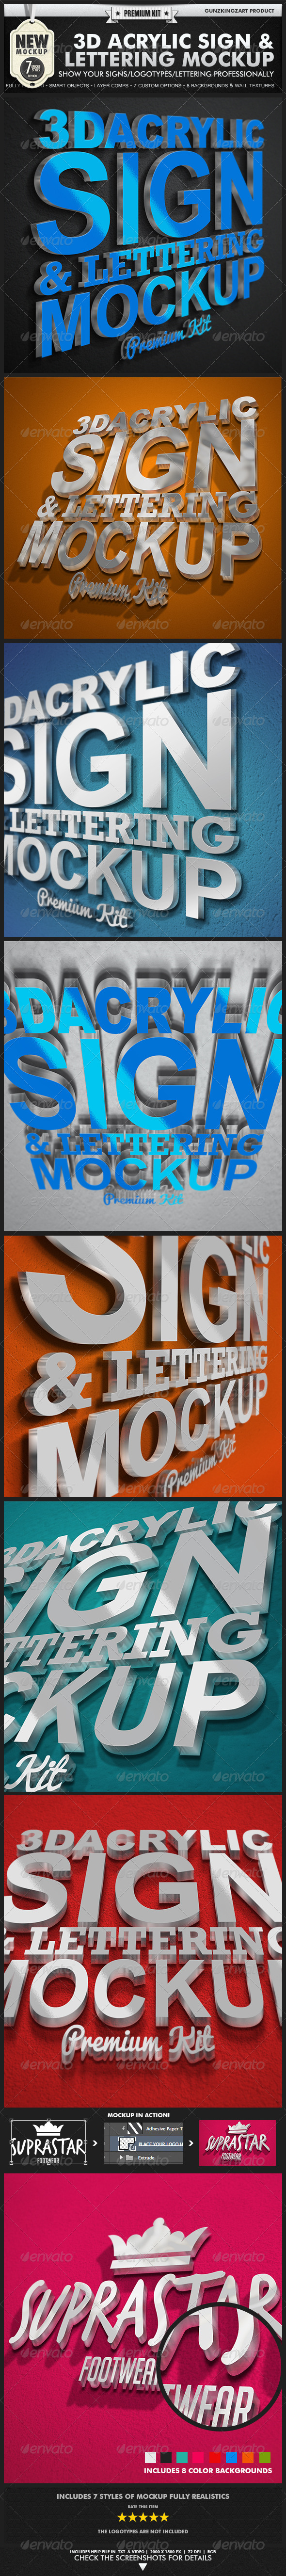 GraphicRiver 3D Acrylic Sign Mockup Premium Kit 2582248